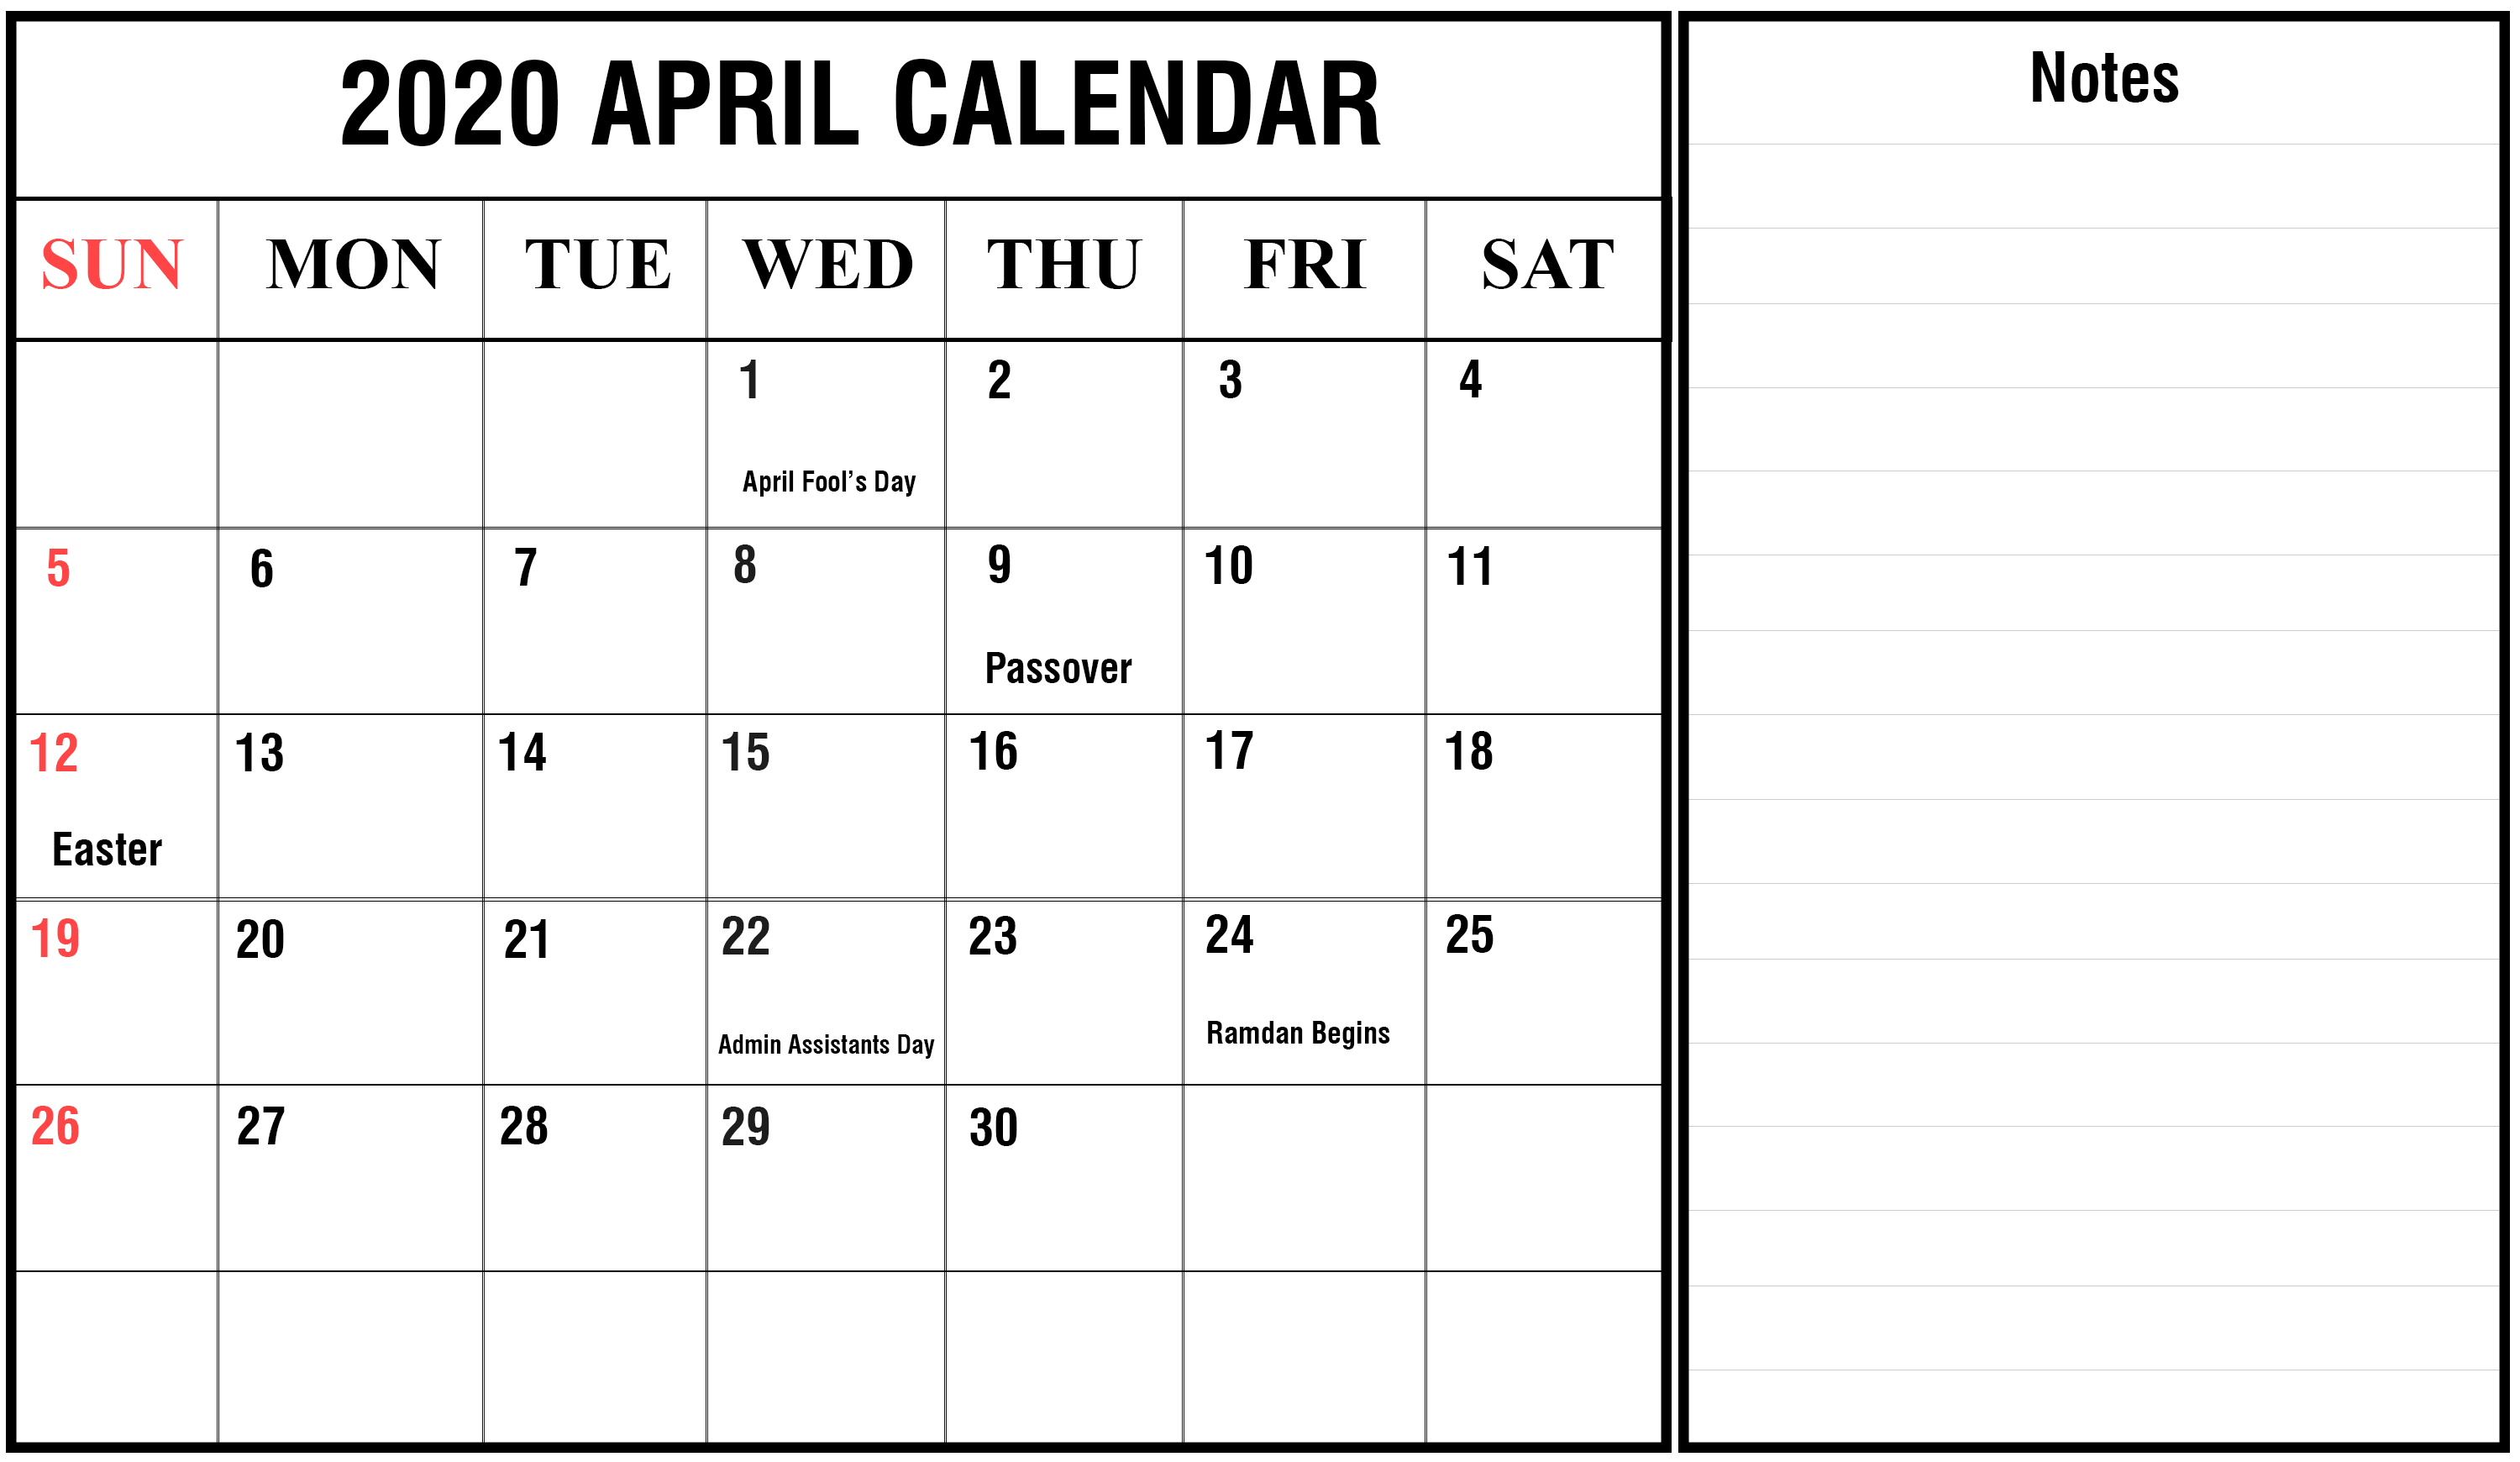 Free April Calendar 2020 Editable Template